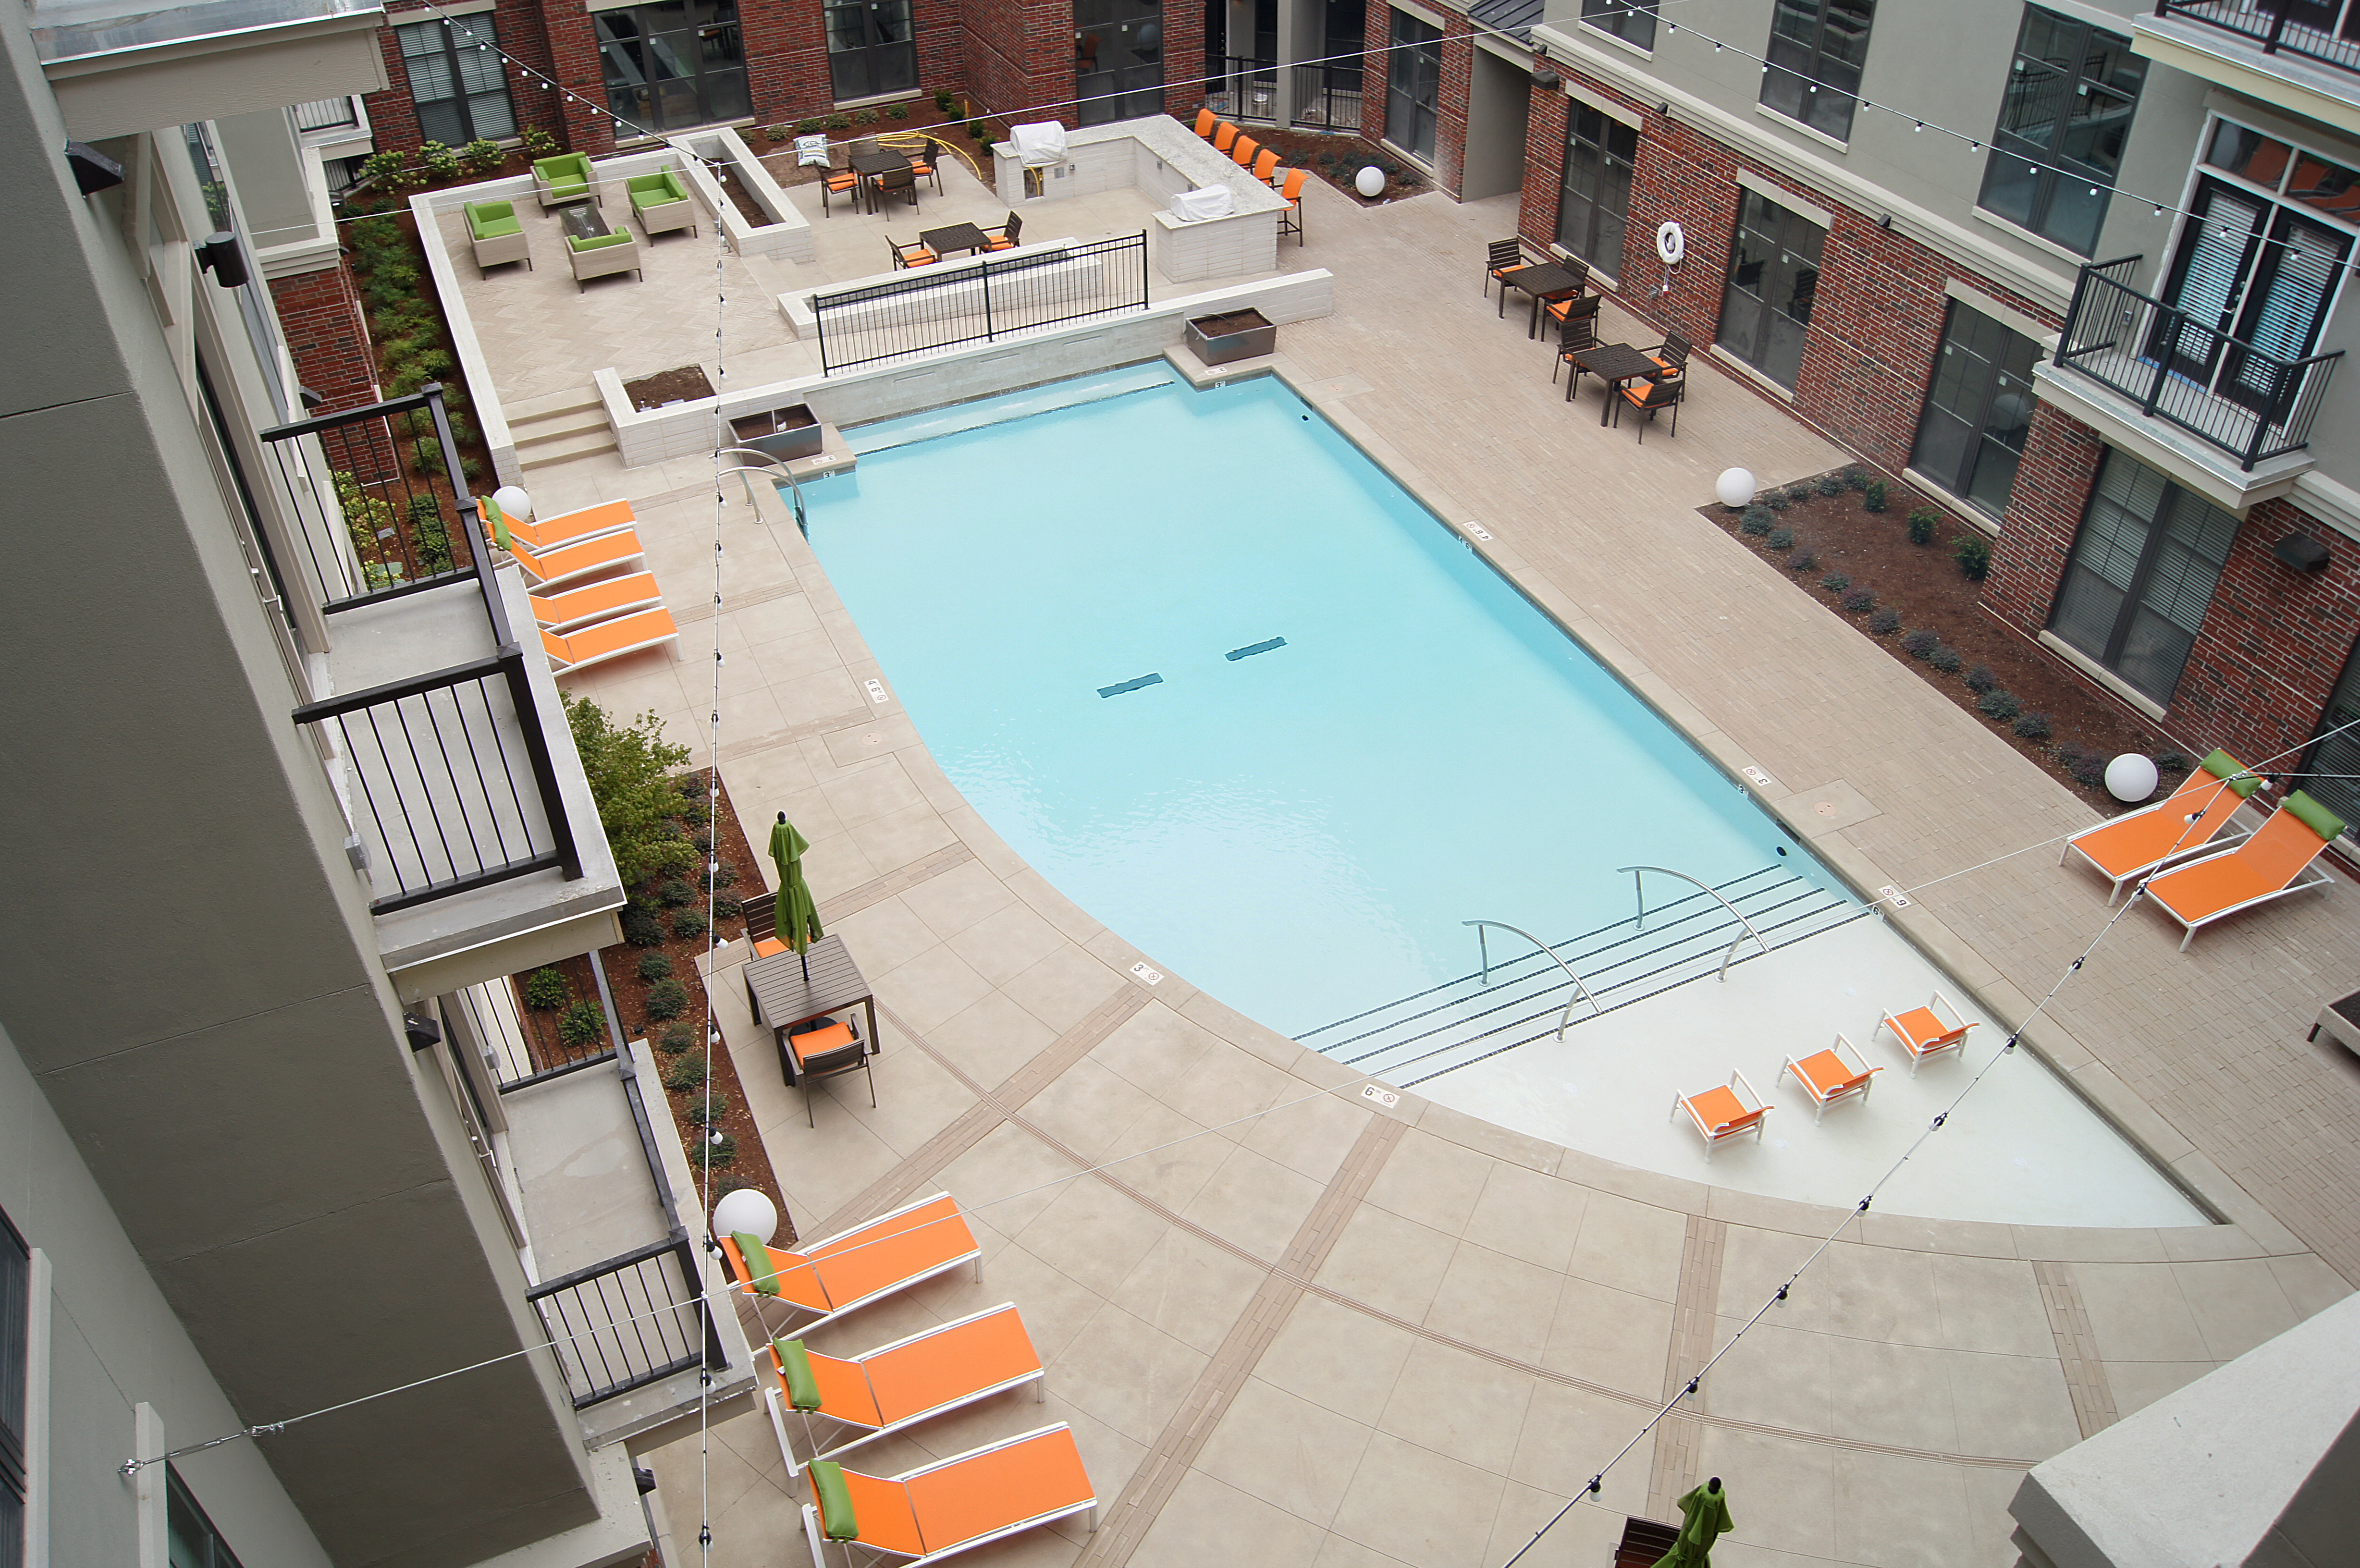 Marvelous ... The Edge Luxury Apartments In Tulsa Installed Bomanite Exposed  Aggregate Alloy System Concrete Pool Deck